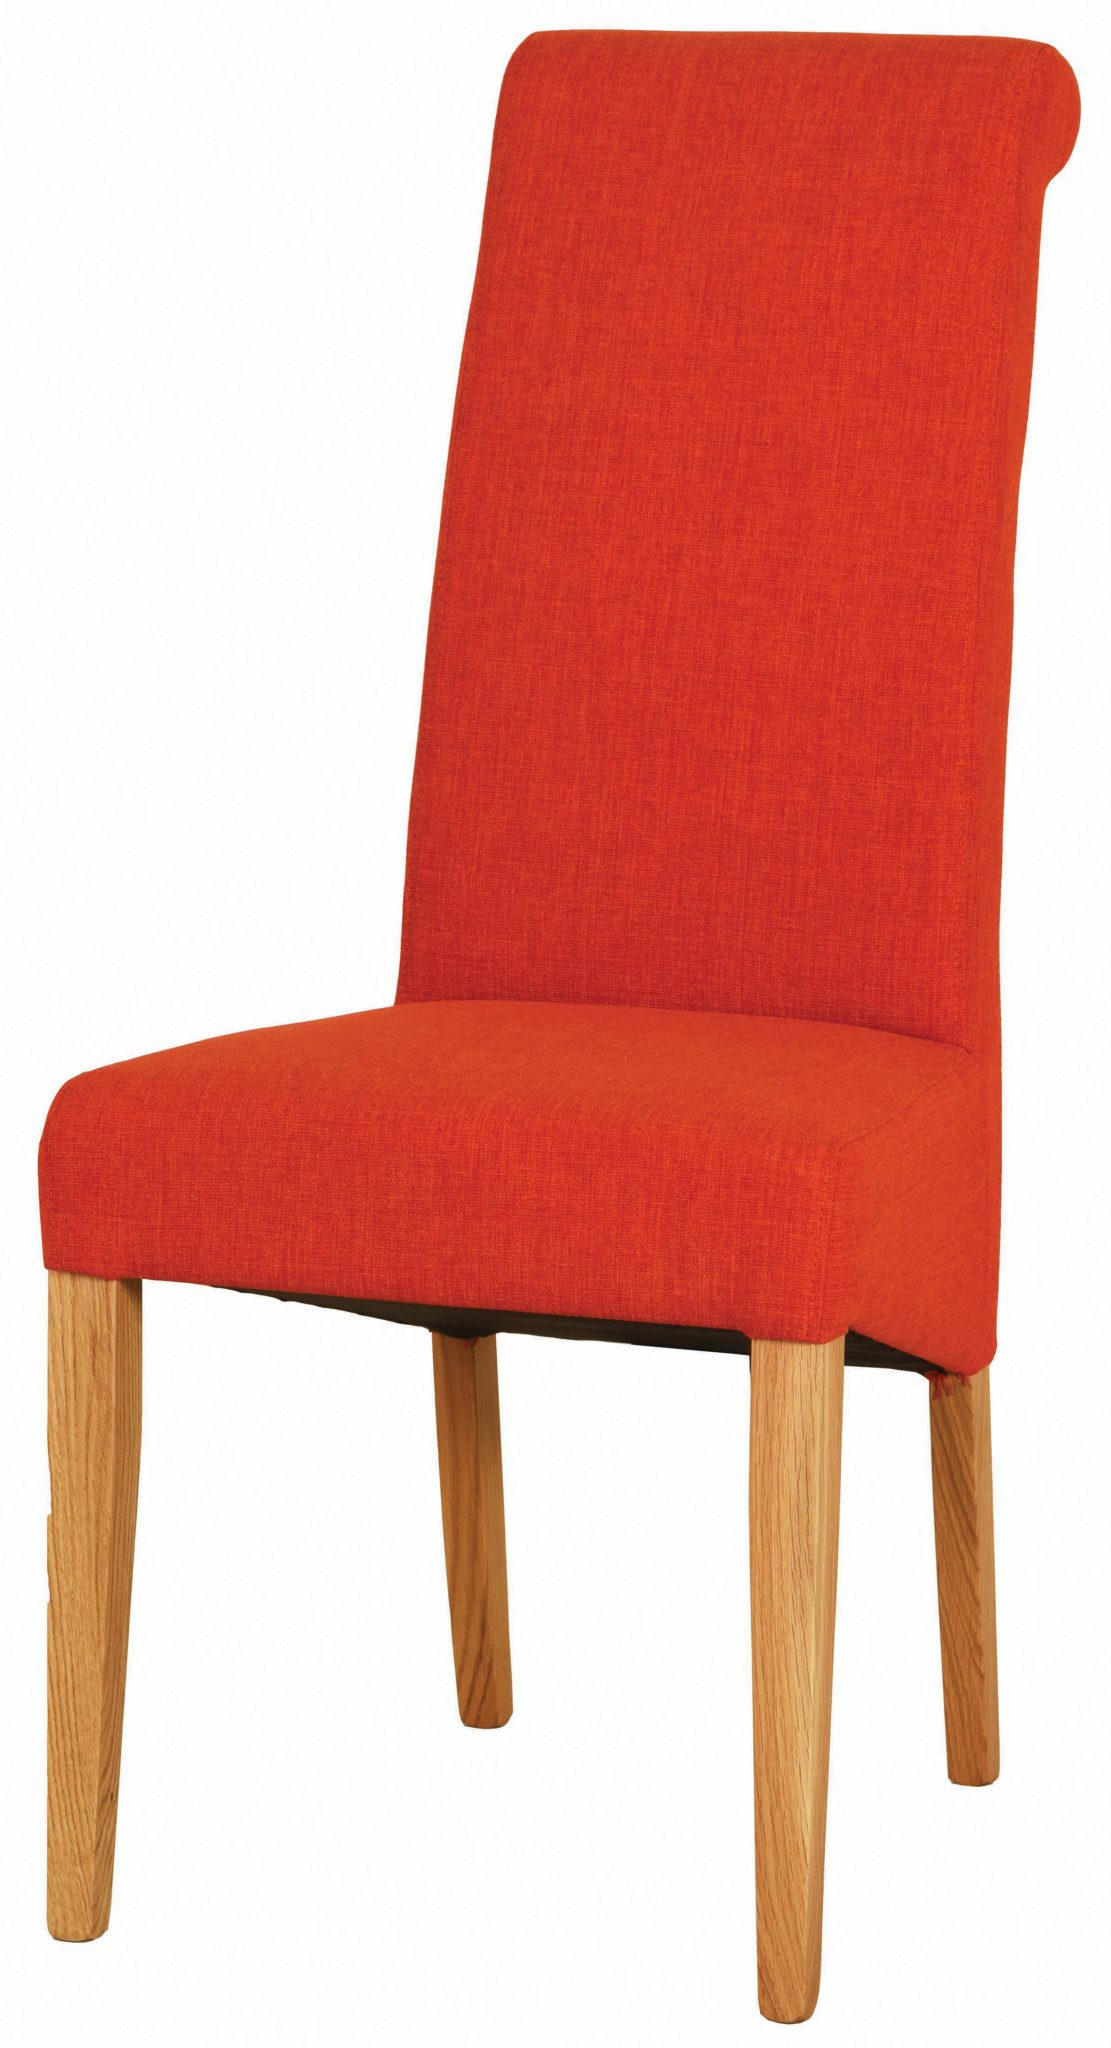 orange fabric dining chair with light oak legs. tight woven fabric on back seat and pad